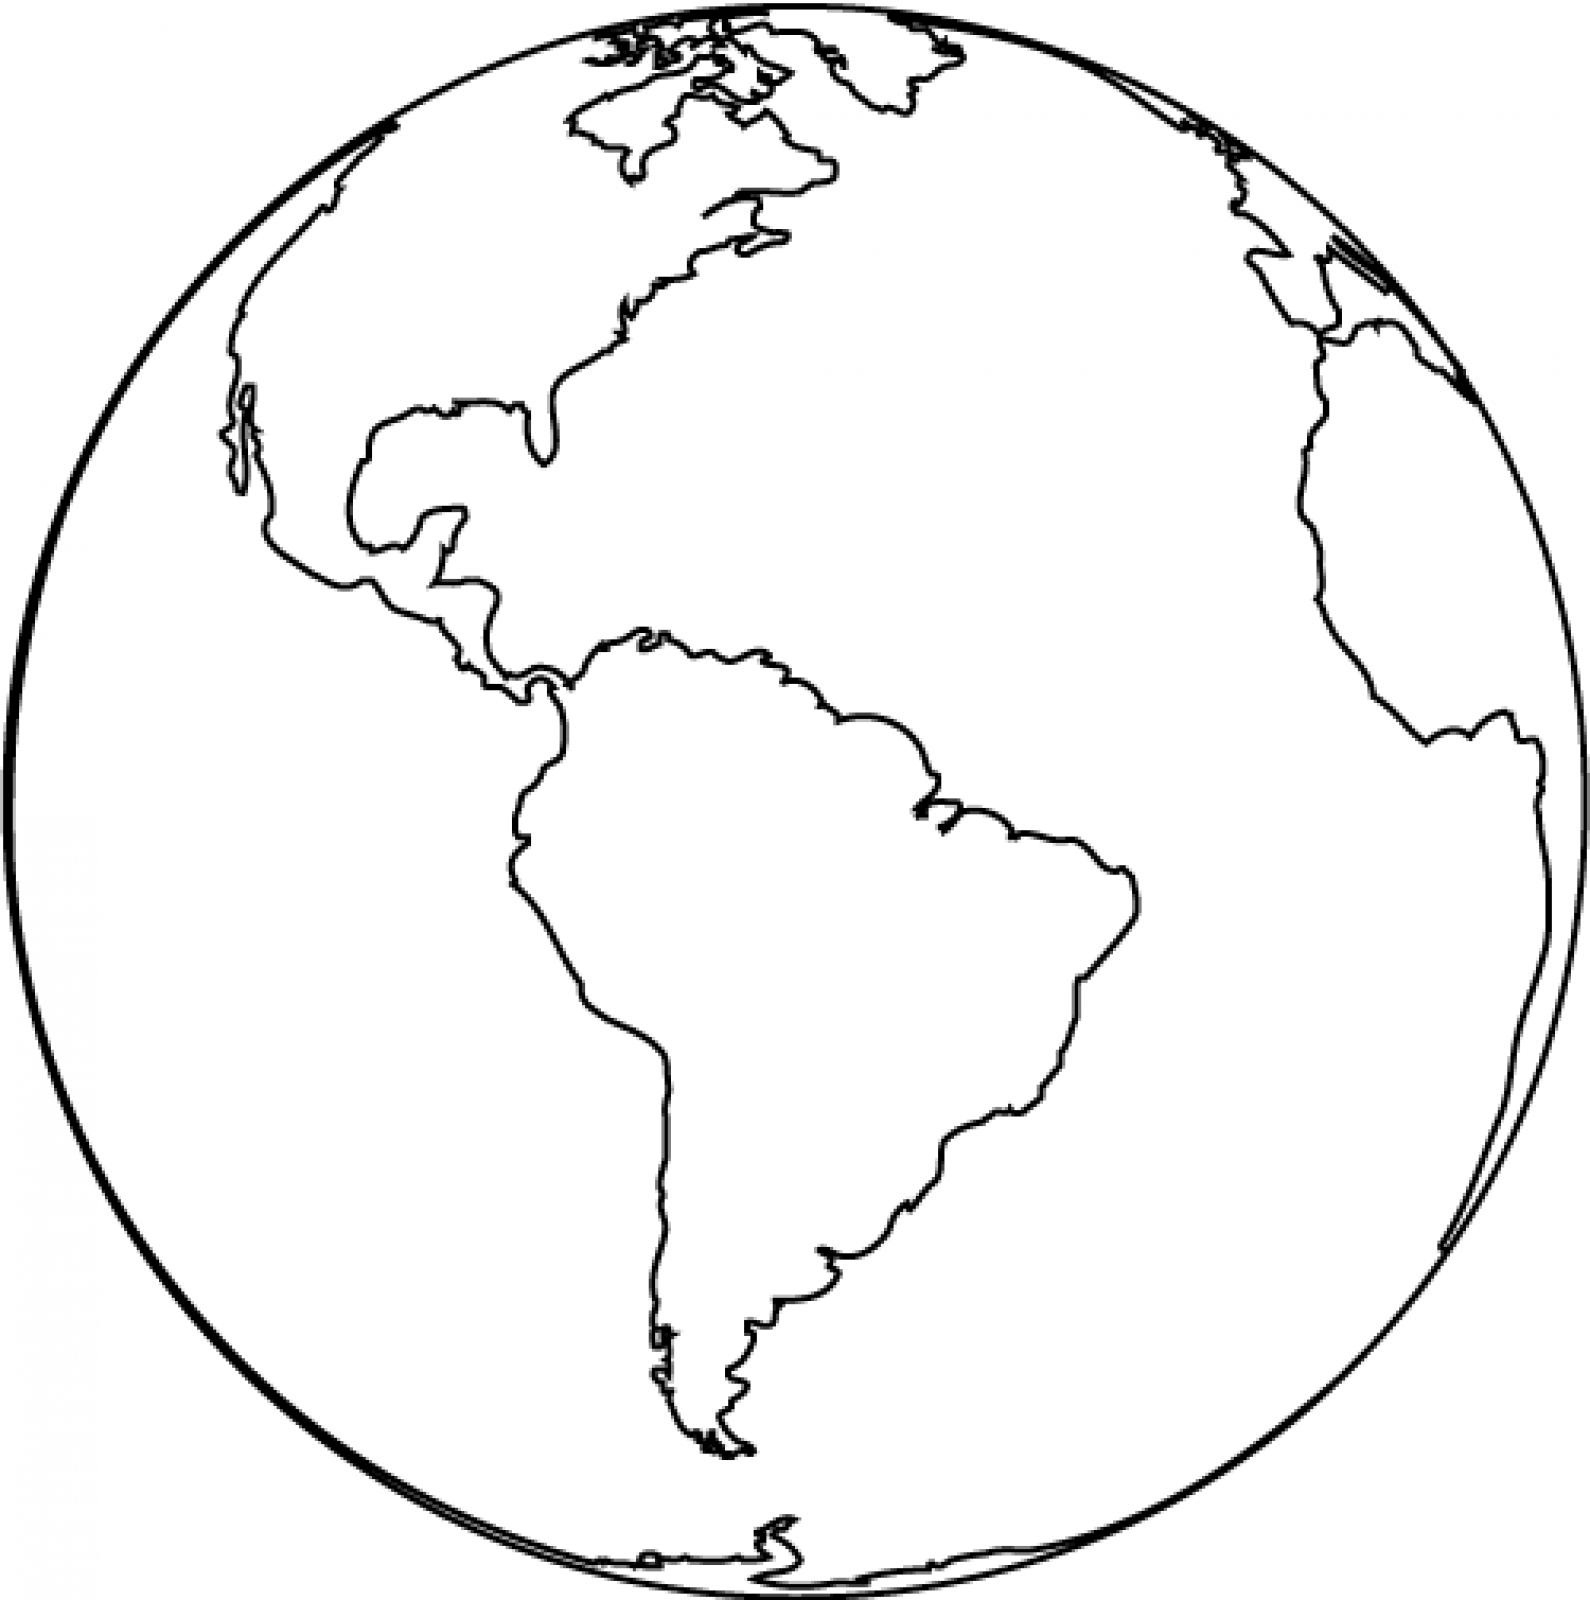 Earth drawing clipart at getdrawings free for personal use earth drawing clipart 30 earth drawing clipart